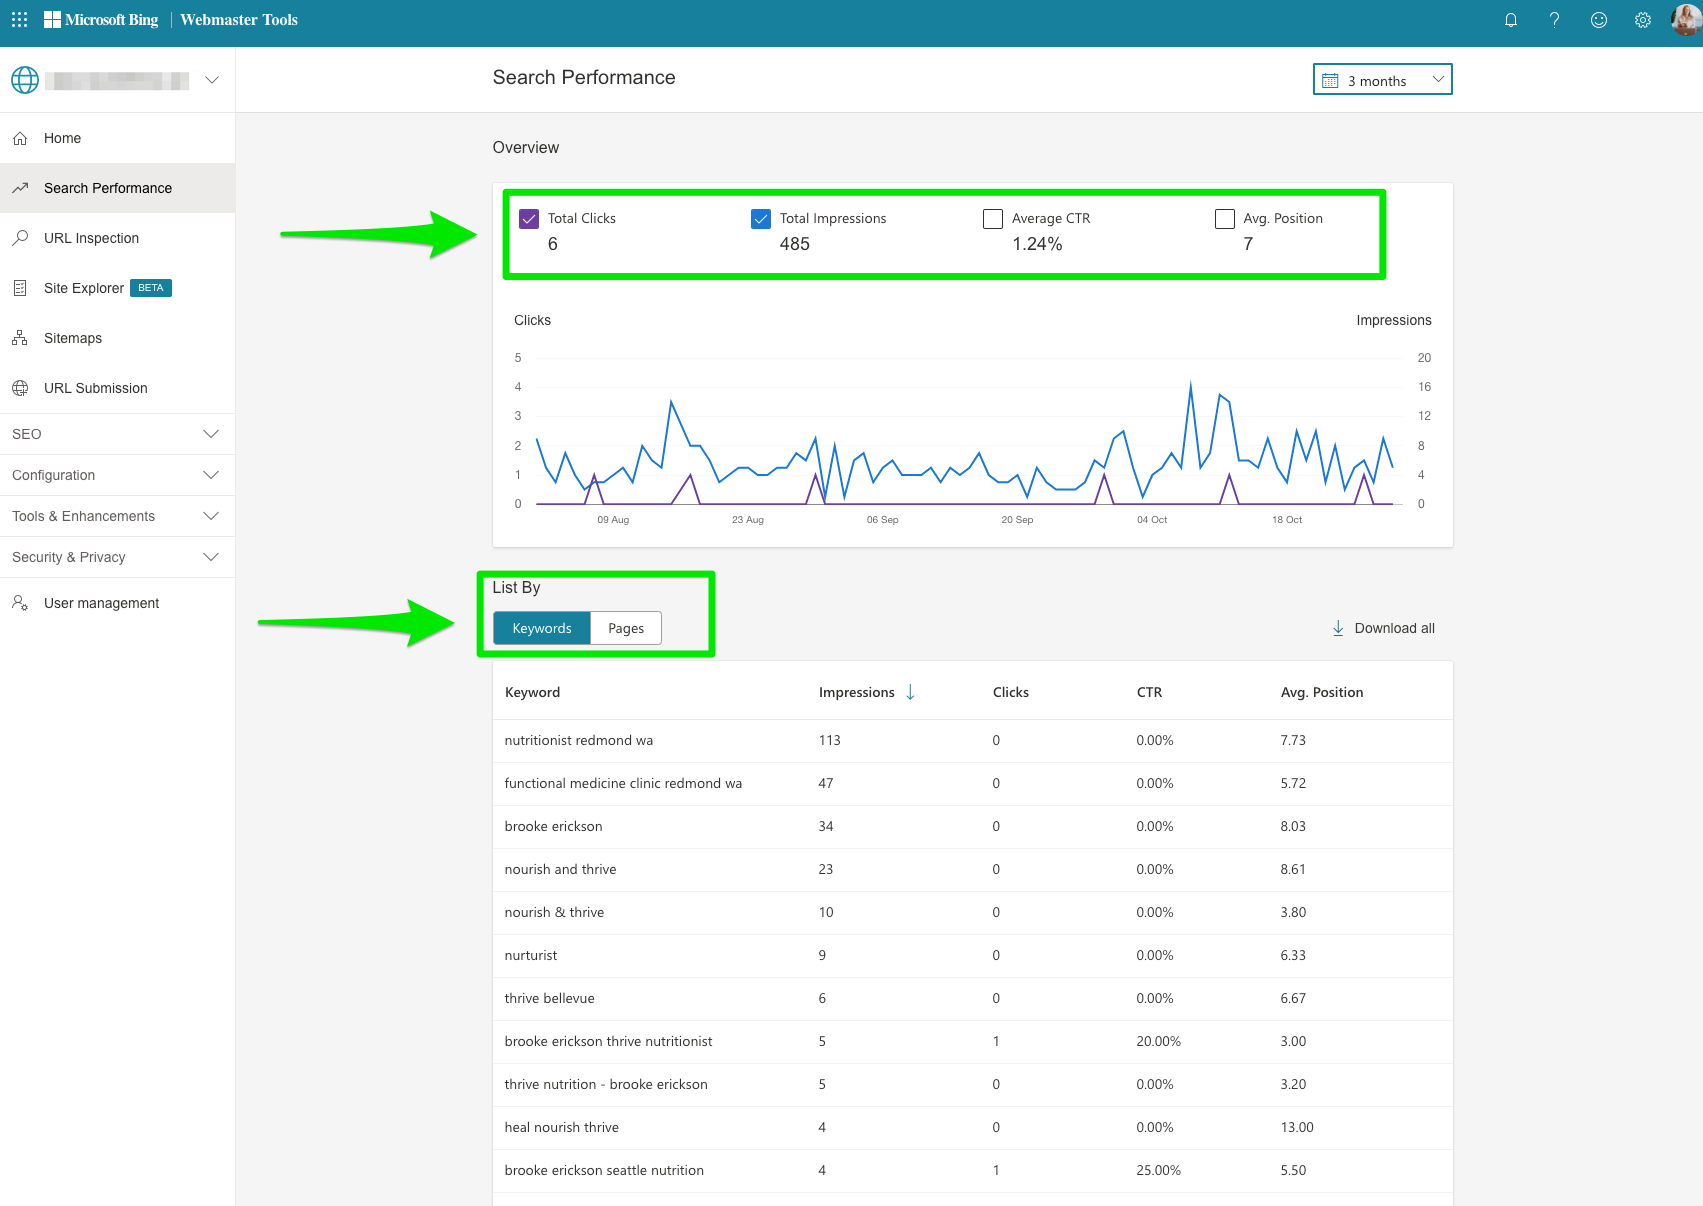 bing webmaster tools search performance